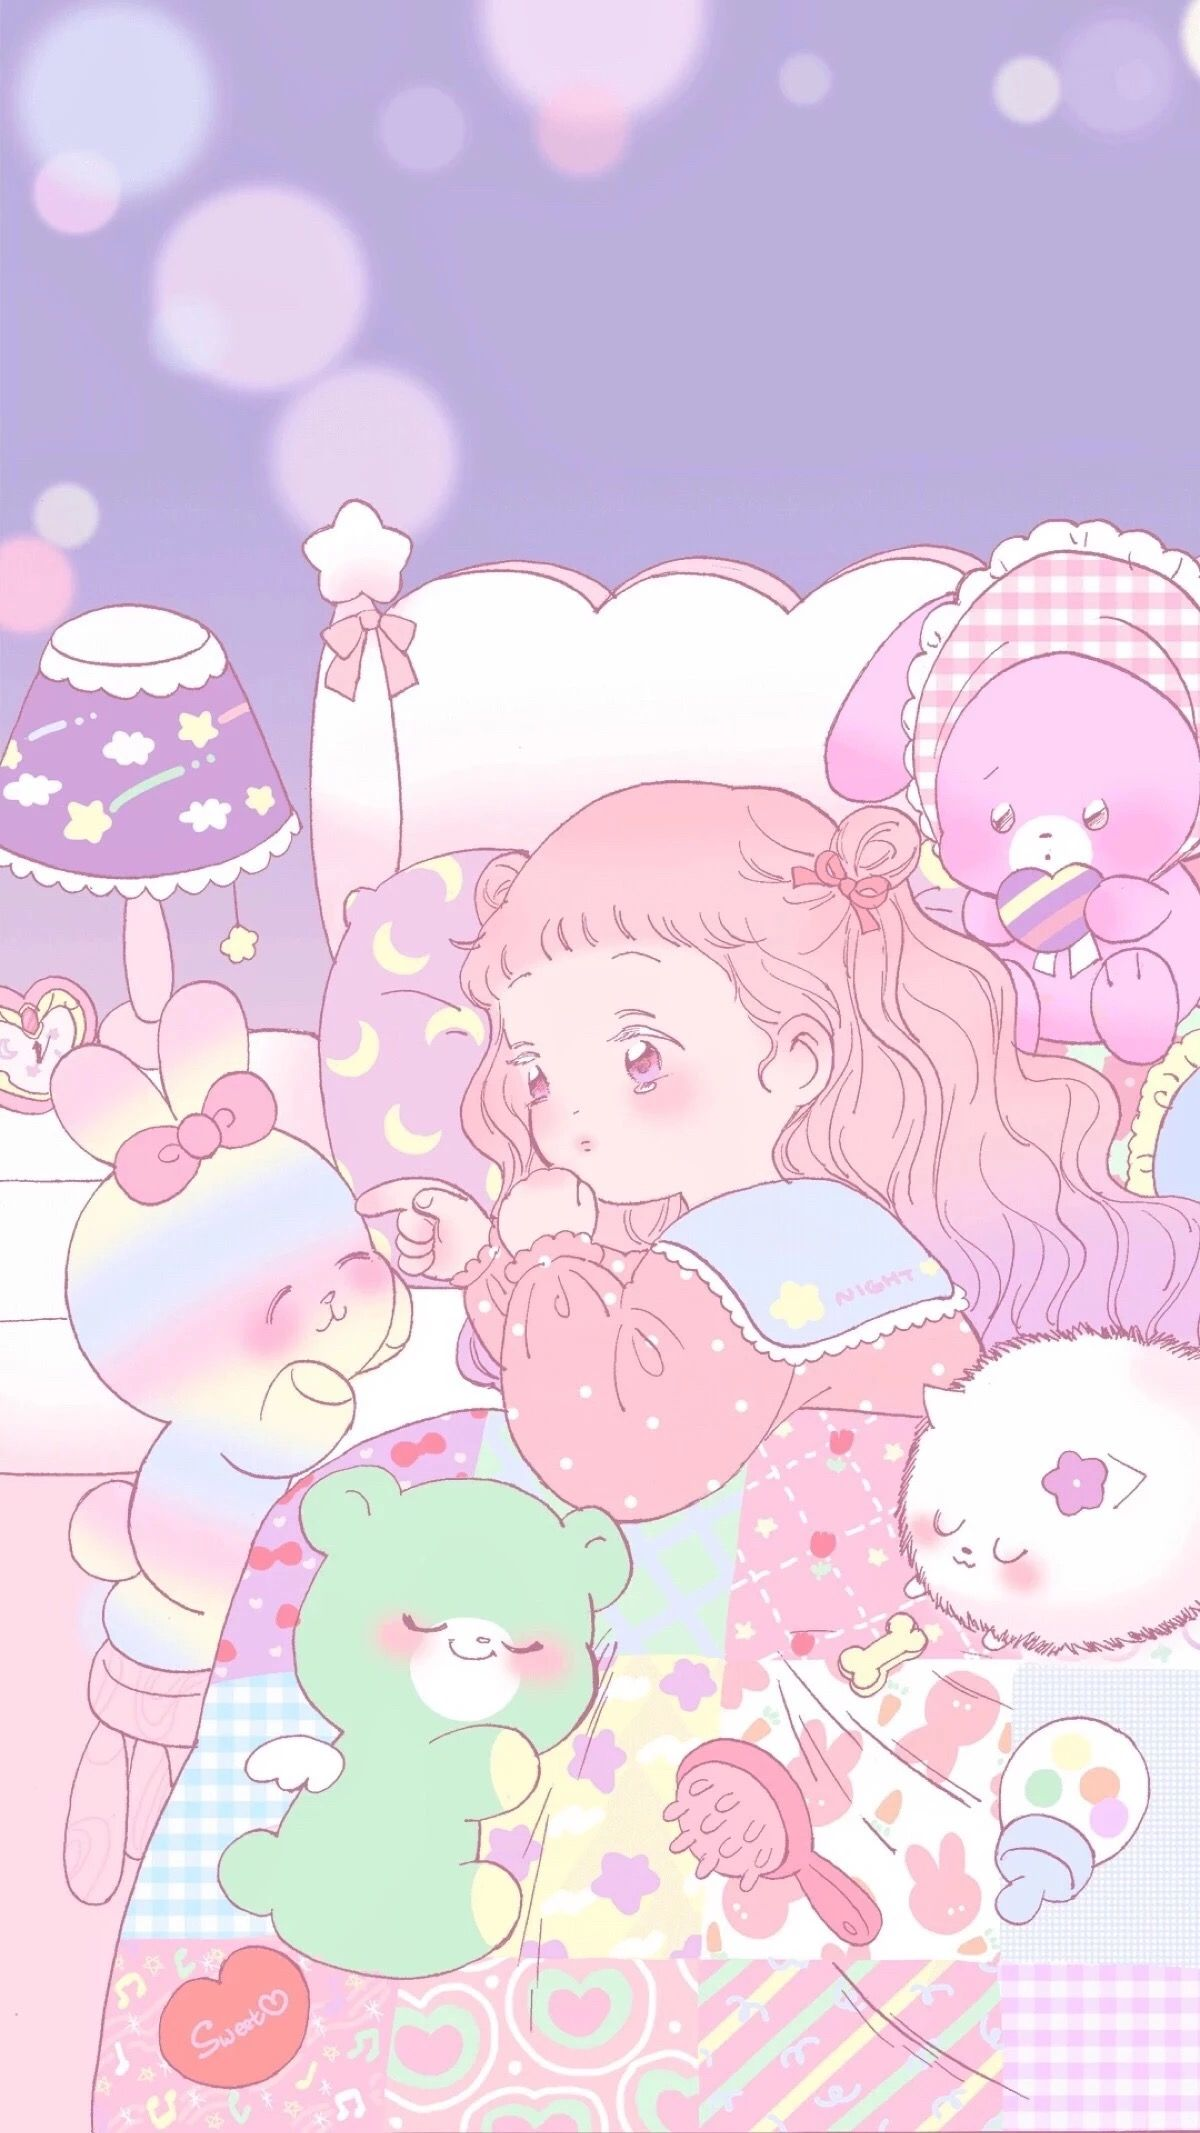 Pin By Pankeawป านแก ว On Cute Cartoon Pinterest Kawaii